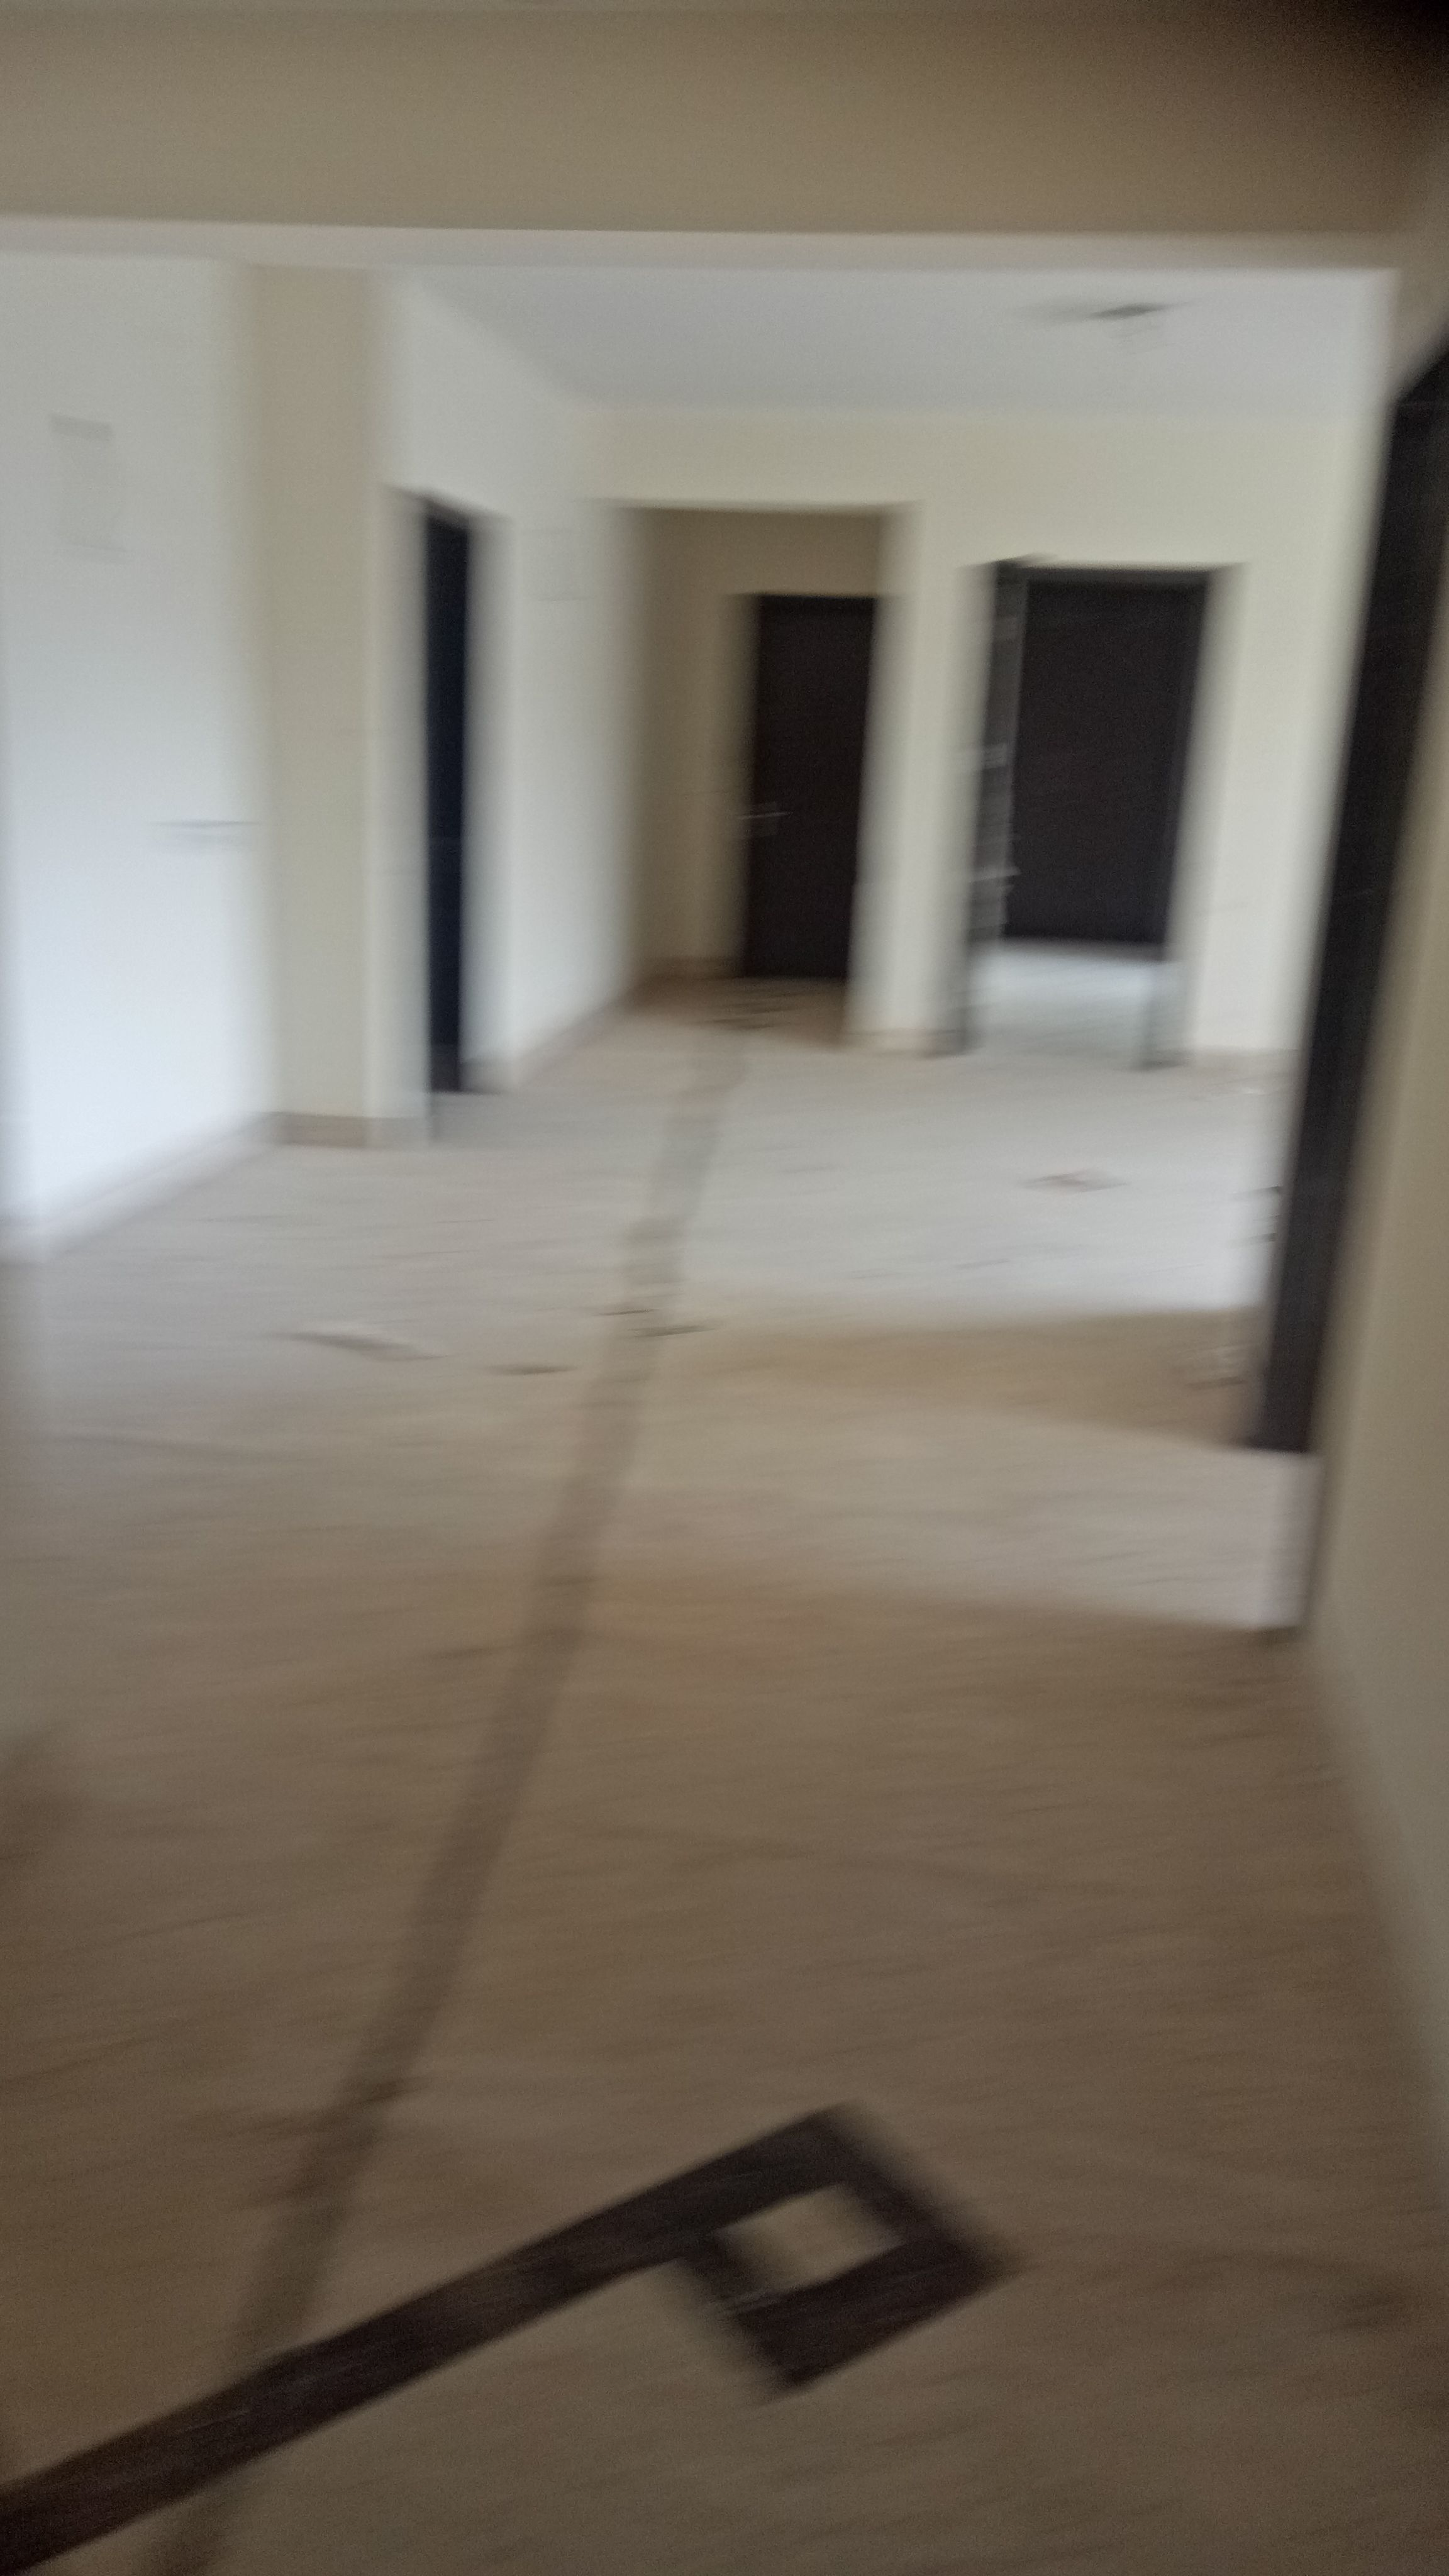 Home Office House Showroom Hospital Residential Commercial Building Hotel Old Apartment Repai Building Renovation Remodeling Contractors Remodeling Renovation